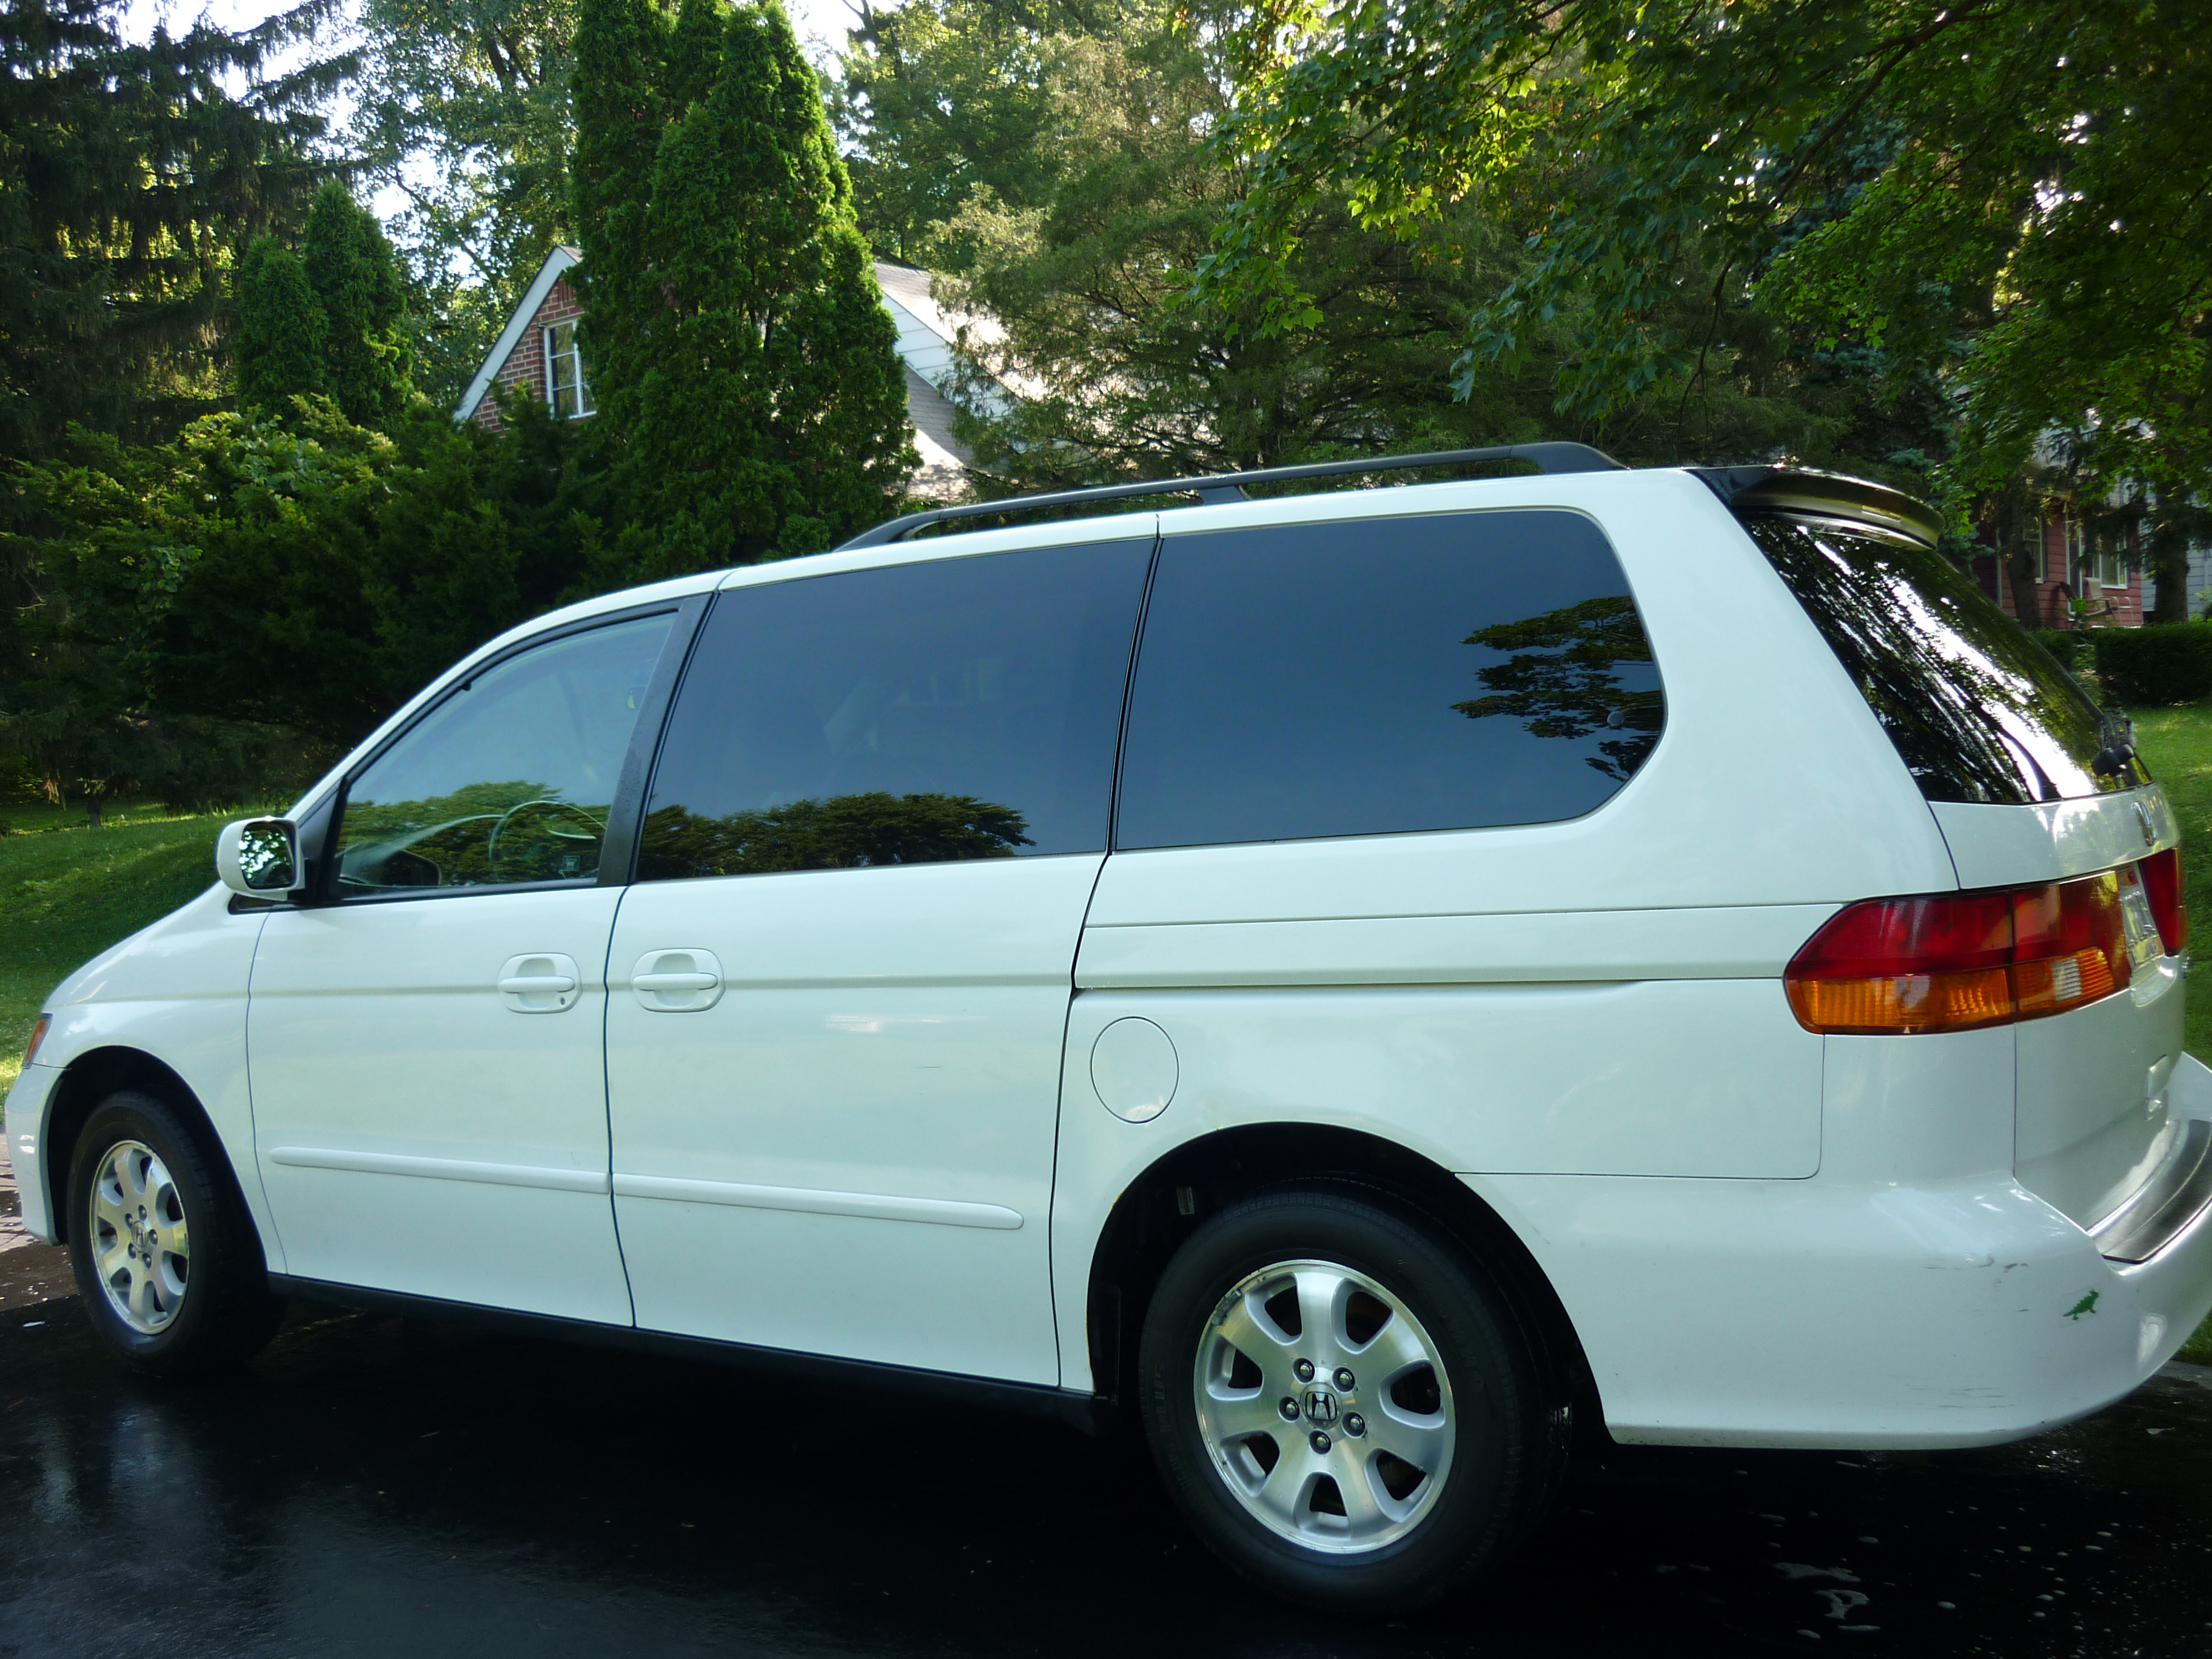 2003 Odyssey for Sale  Just another WordPresscom site